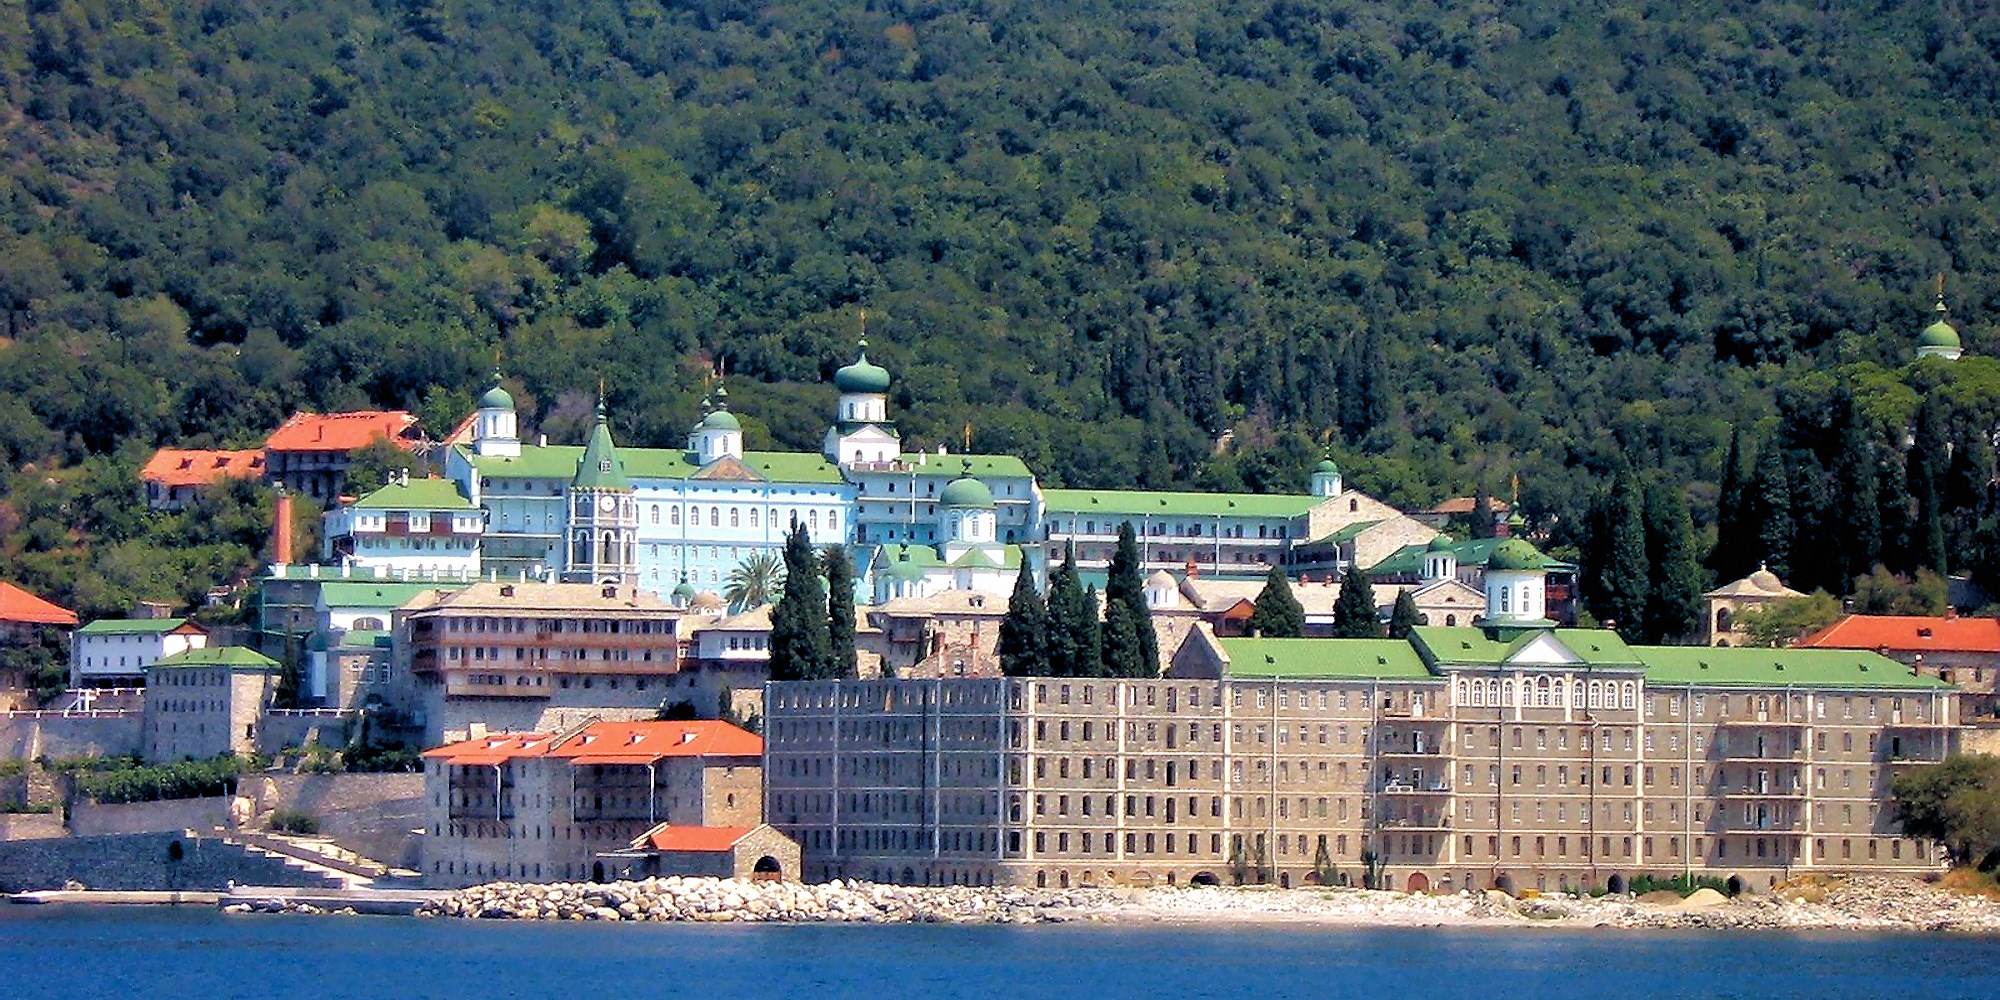 00 panteleimon monastery mt athos greece 290516